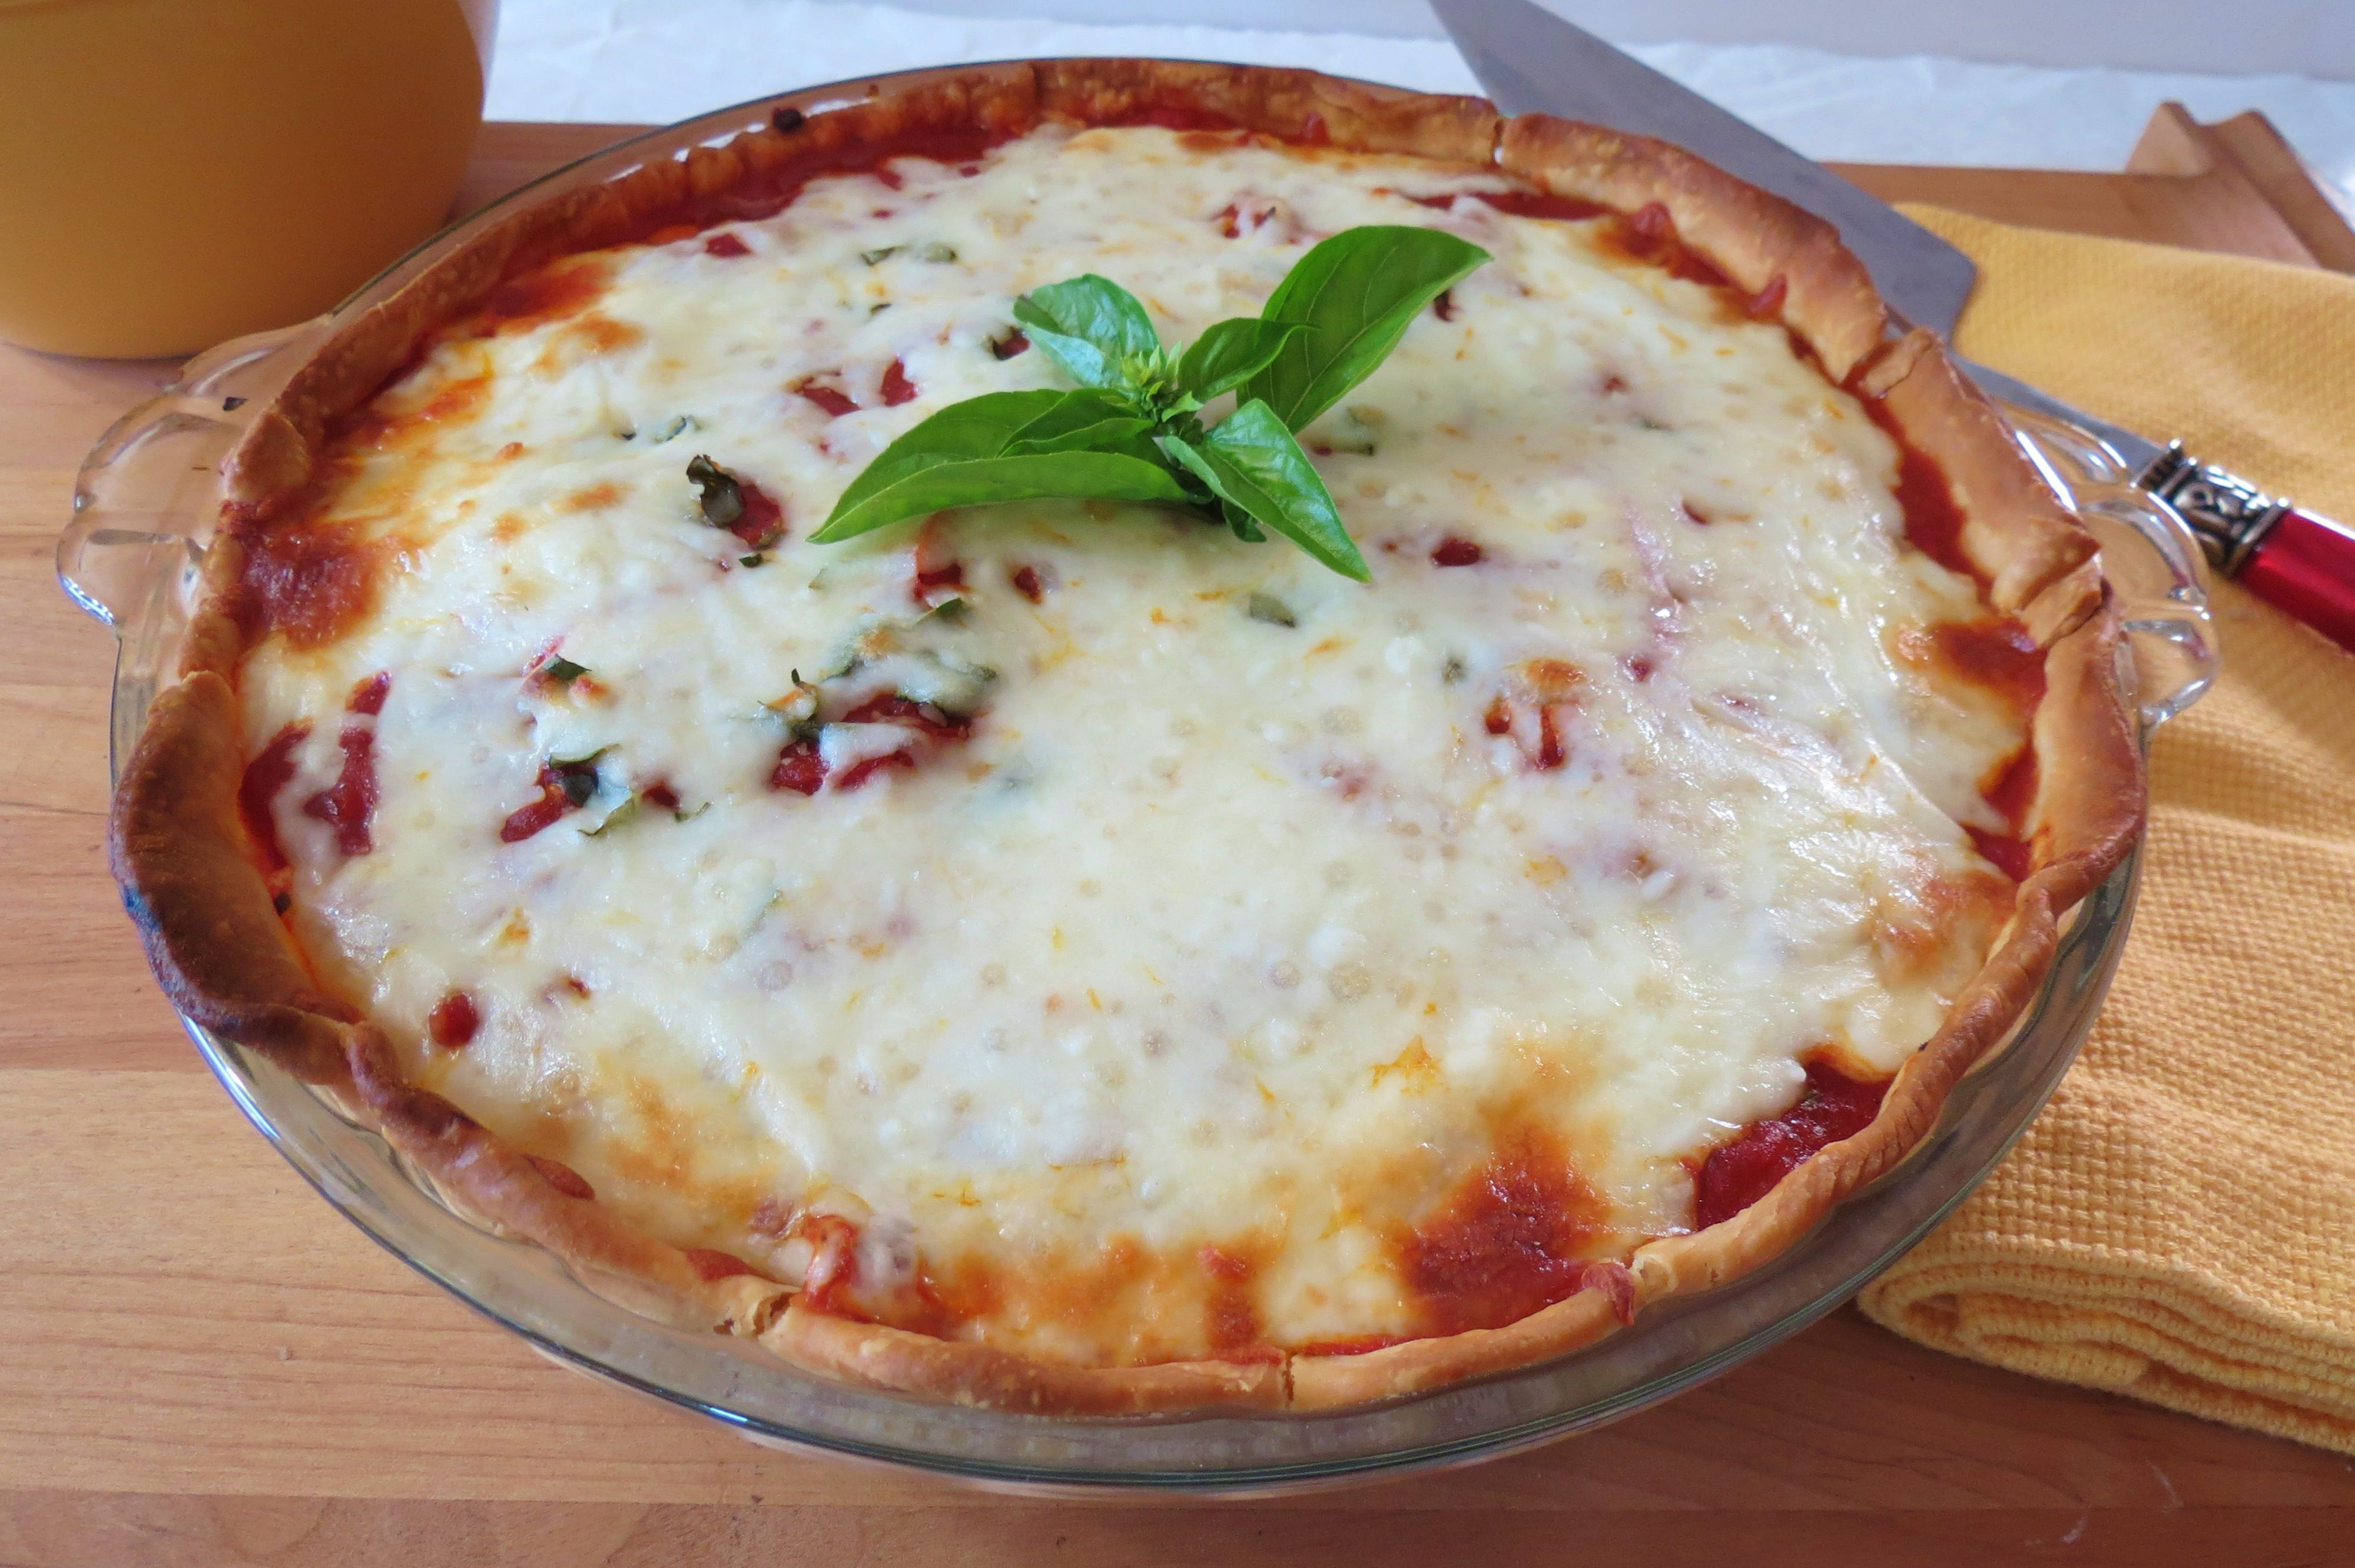 Tomato Pizza Pie - A deep dish pizza, made with fresh tomatoes and basil, topped with mozzarella cheese.